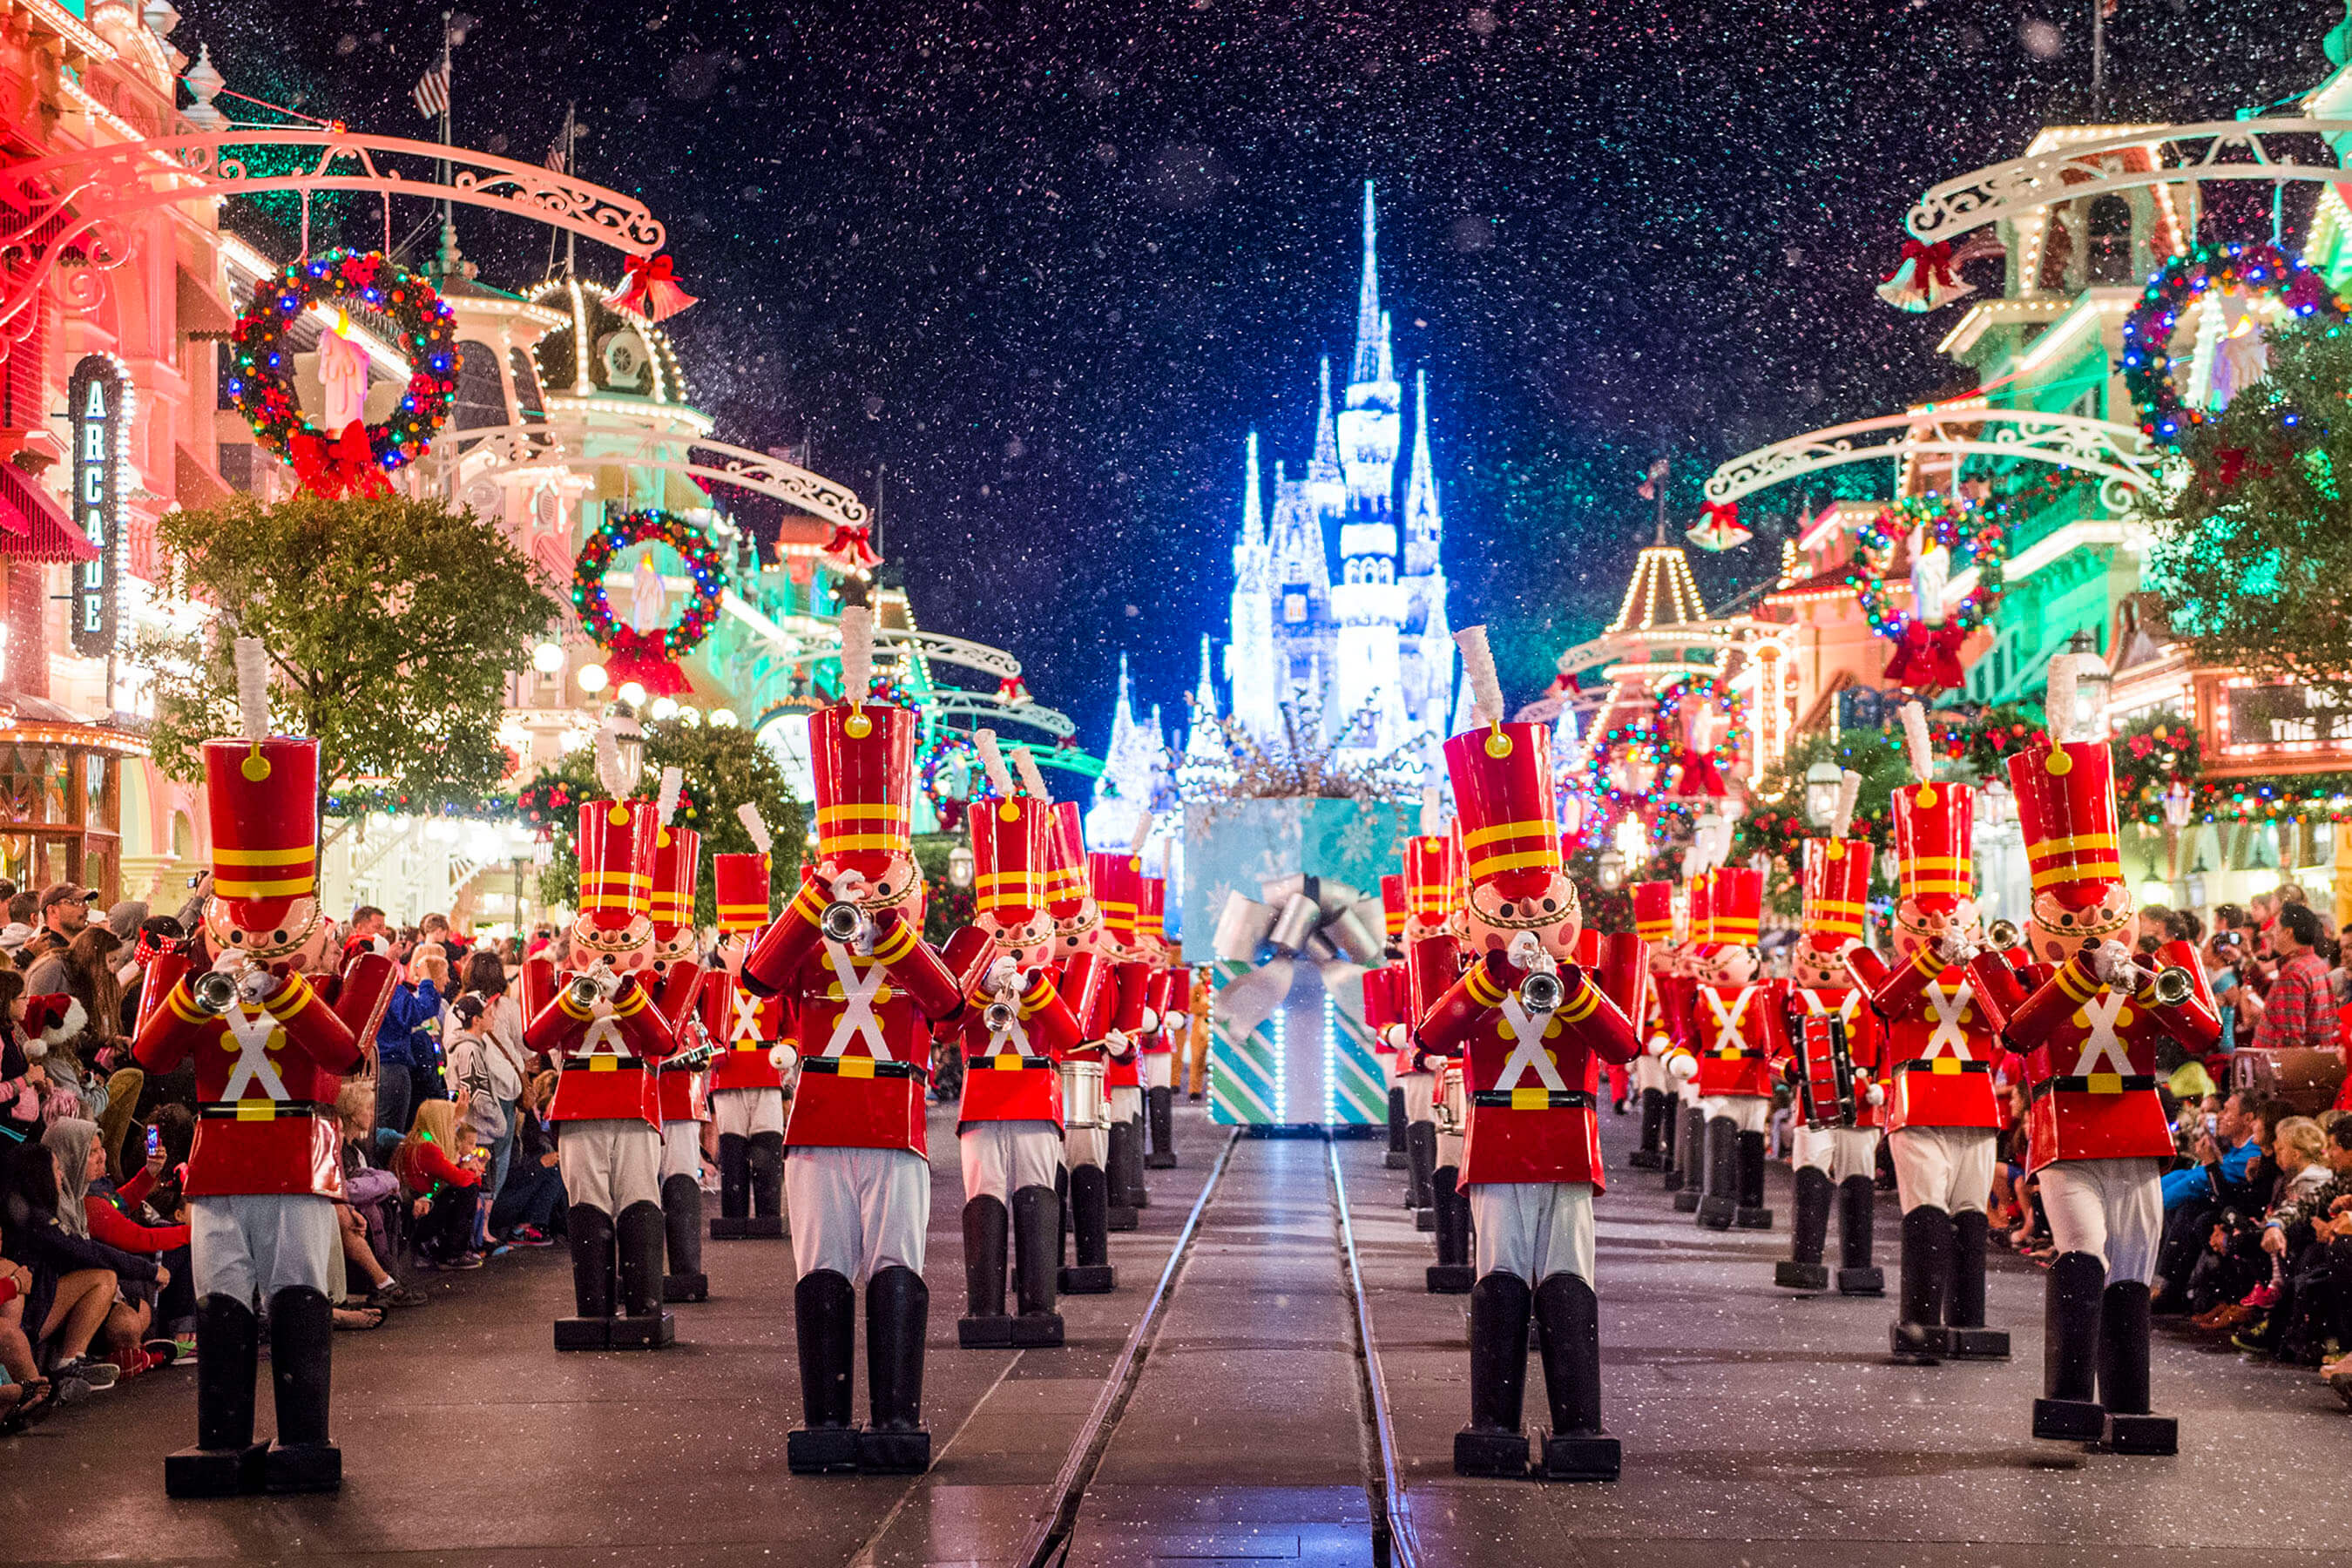 Orlando Christmas Market 2020 Top Christmas events in Orlando for 2019 | Top Villas